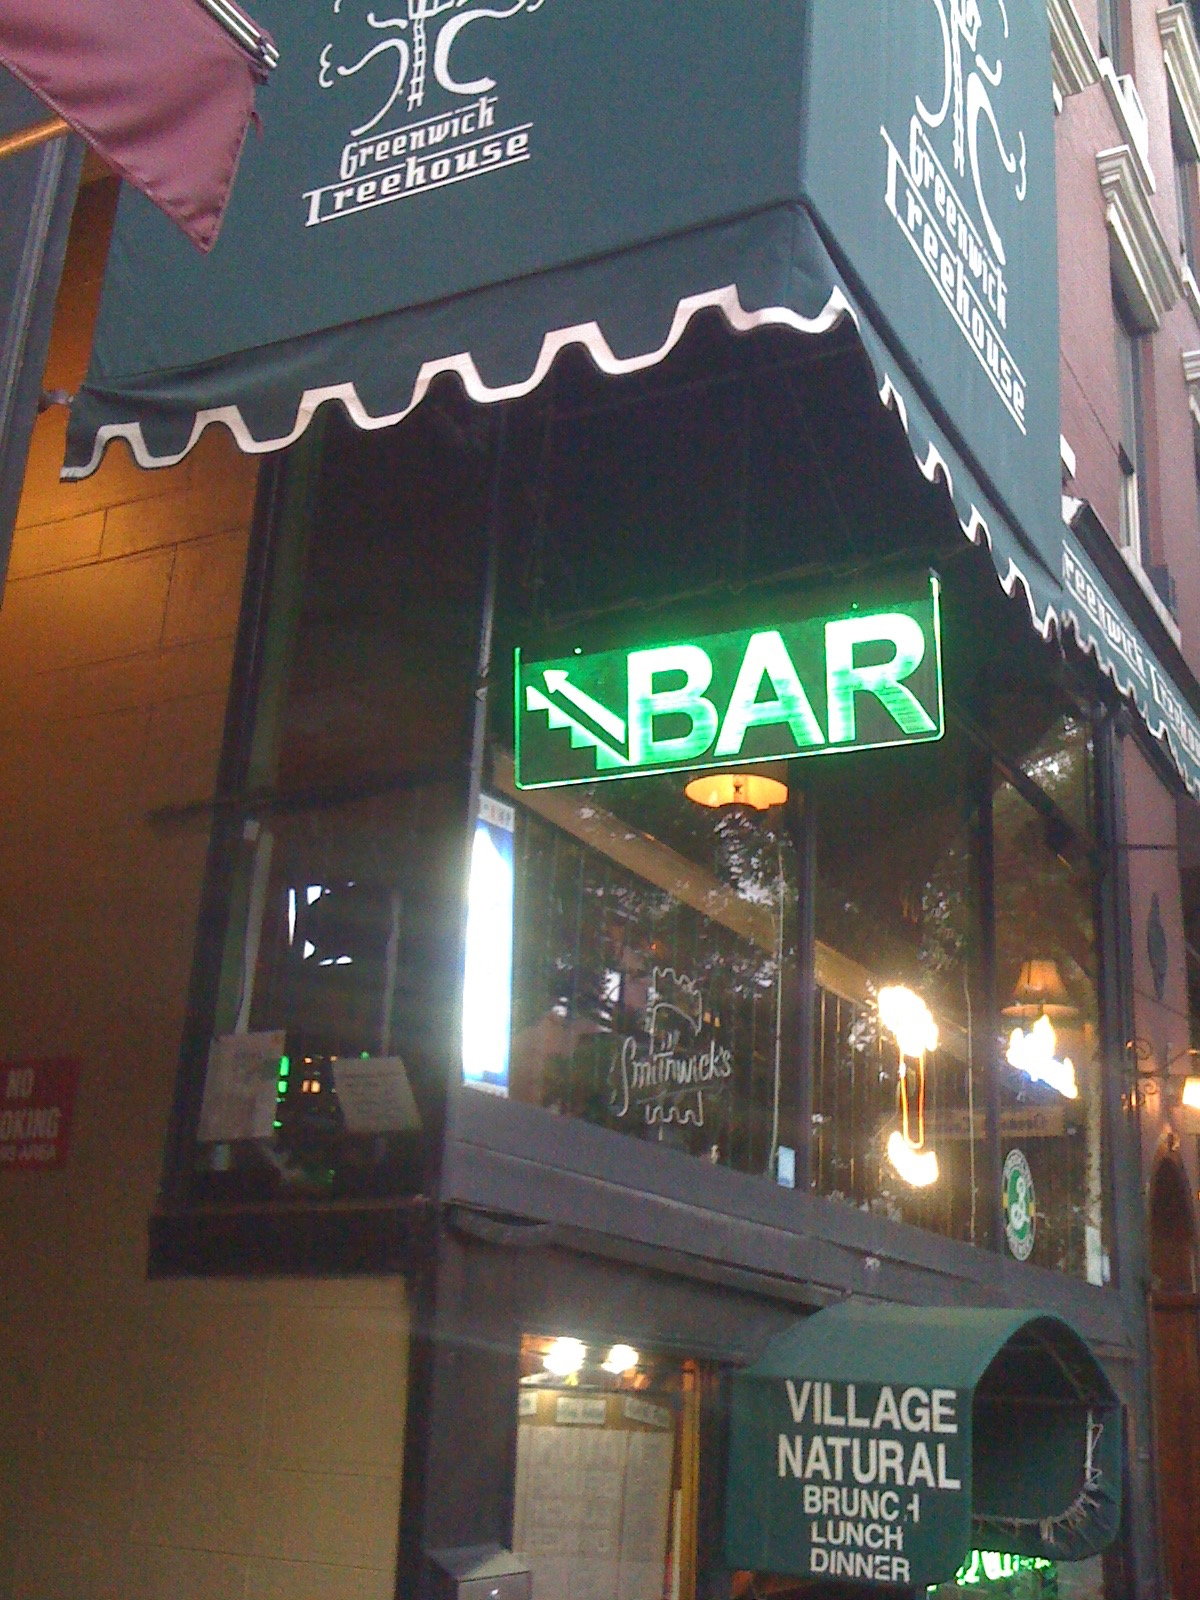 Bar sign glowing